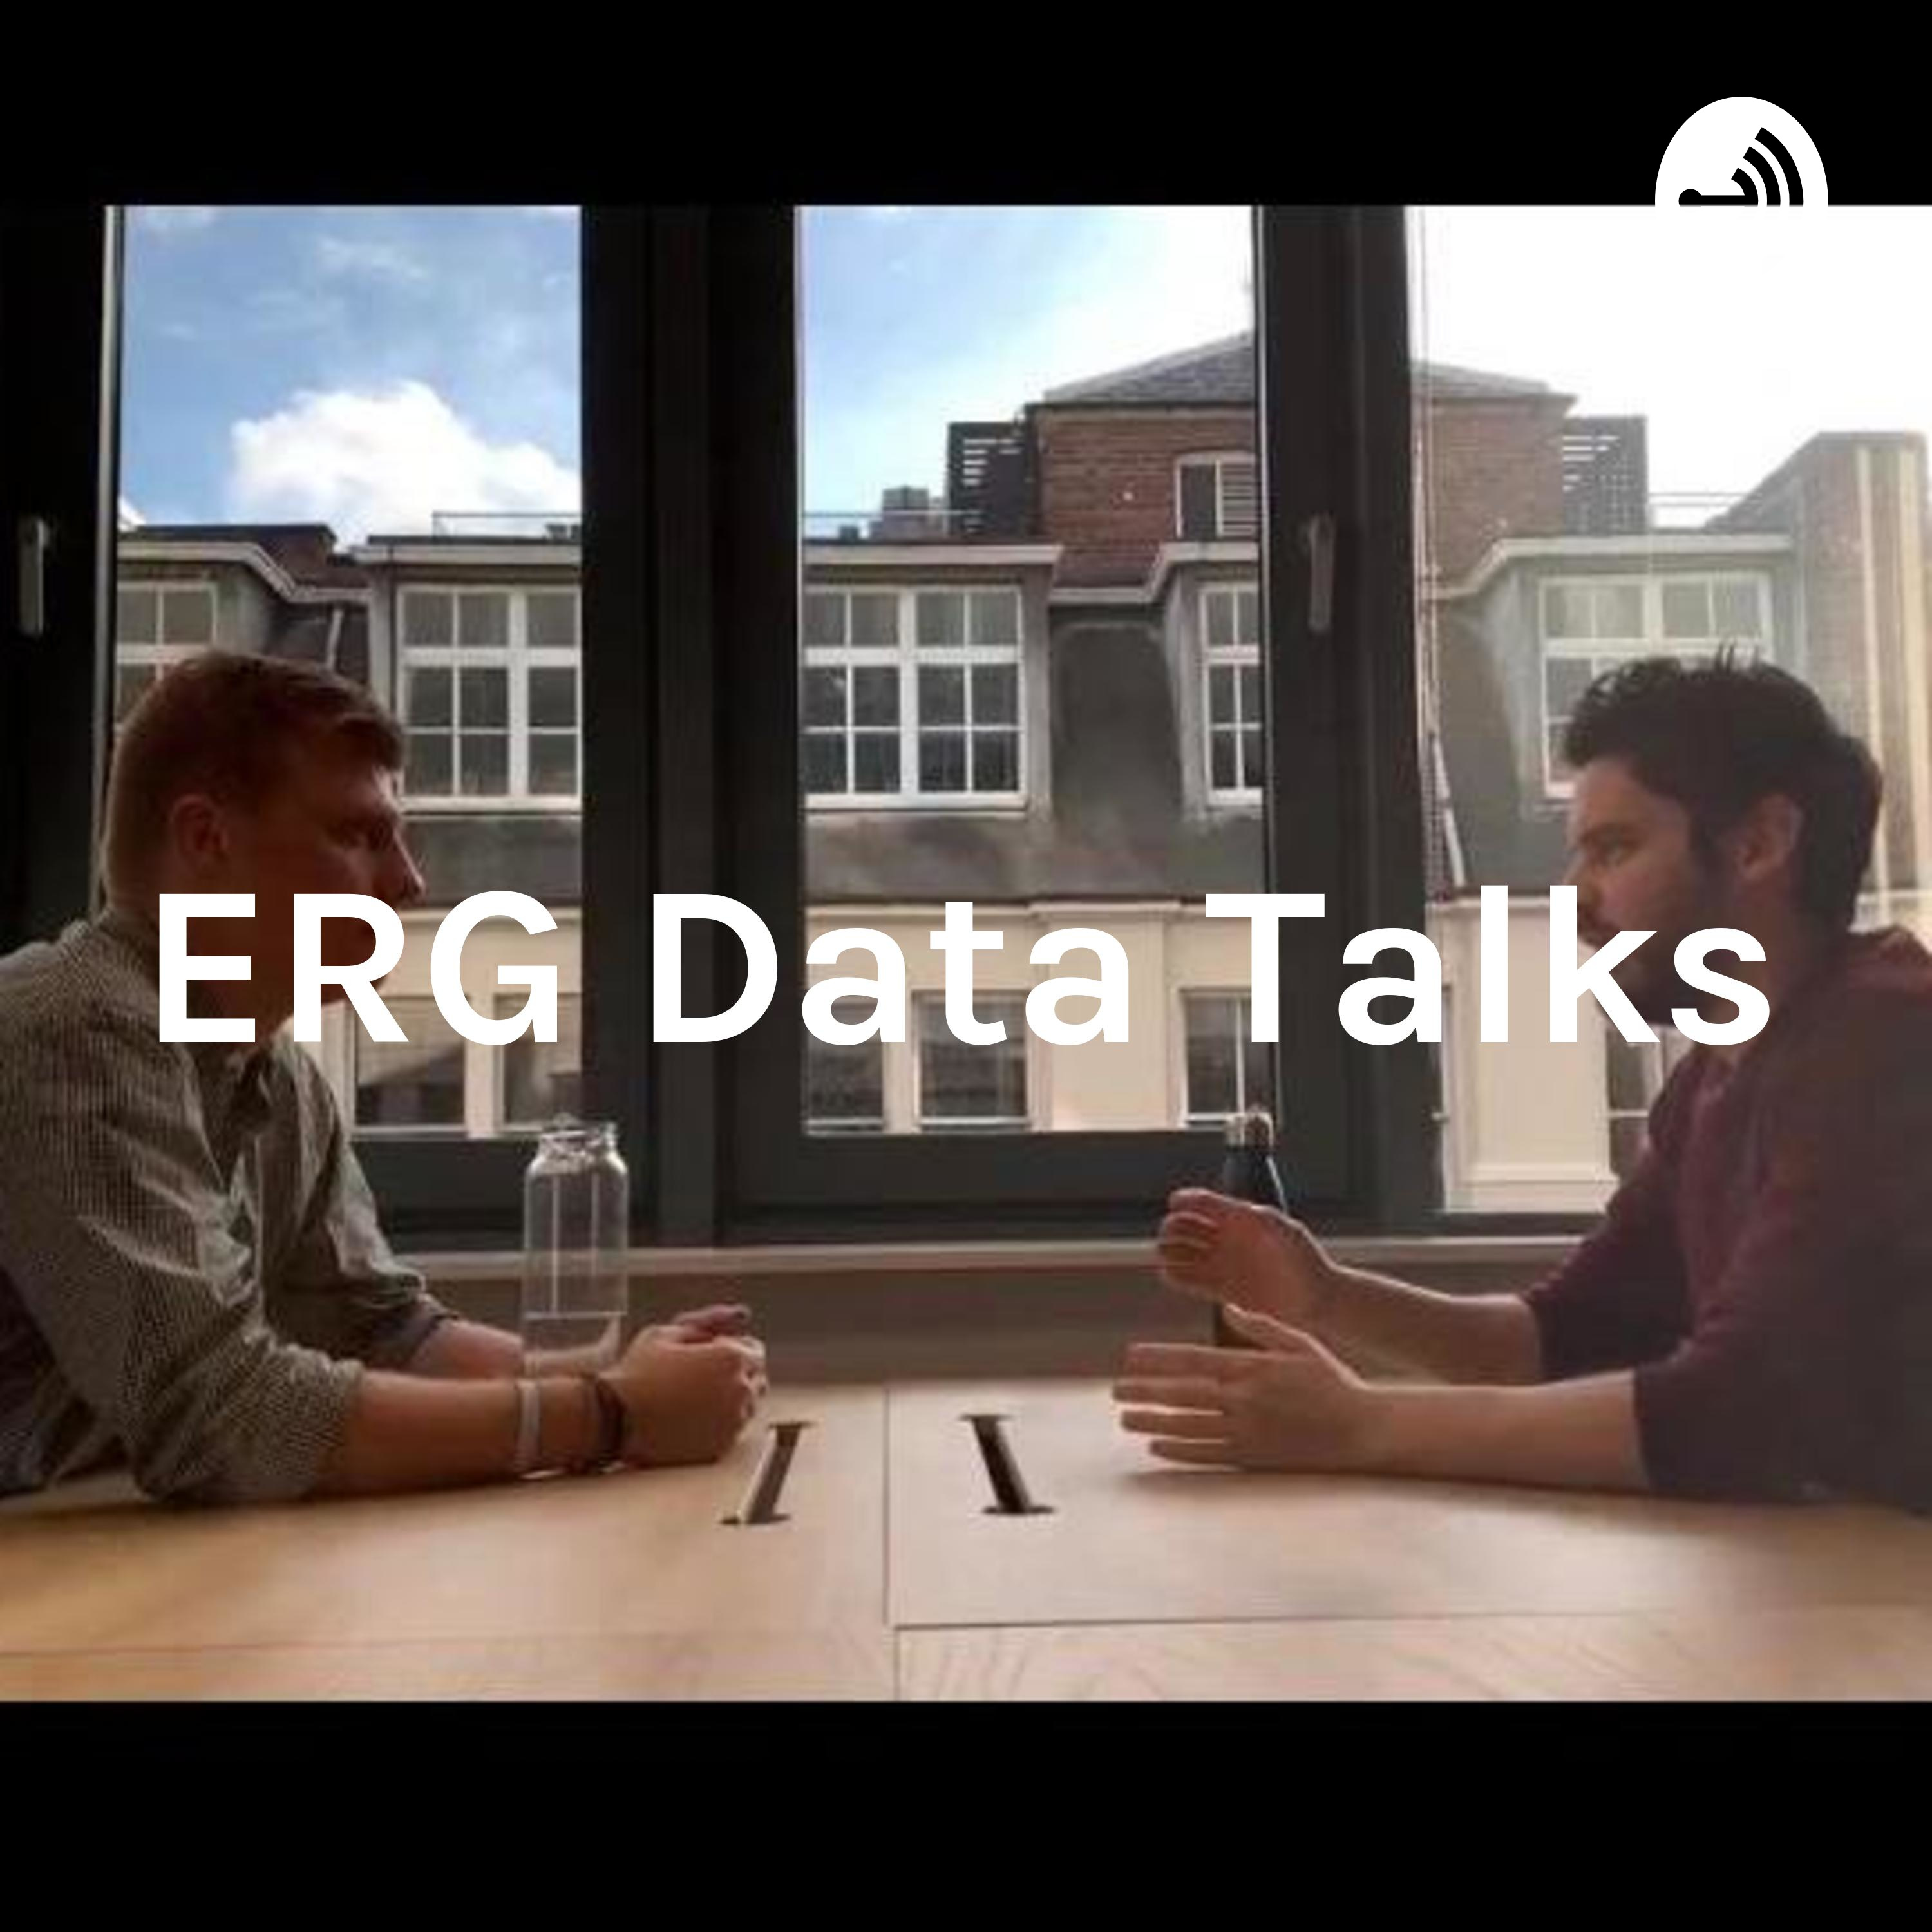 ERG Data Talks - Episode 2 - Time, Money and Happiness